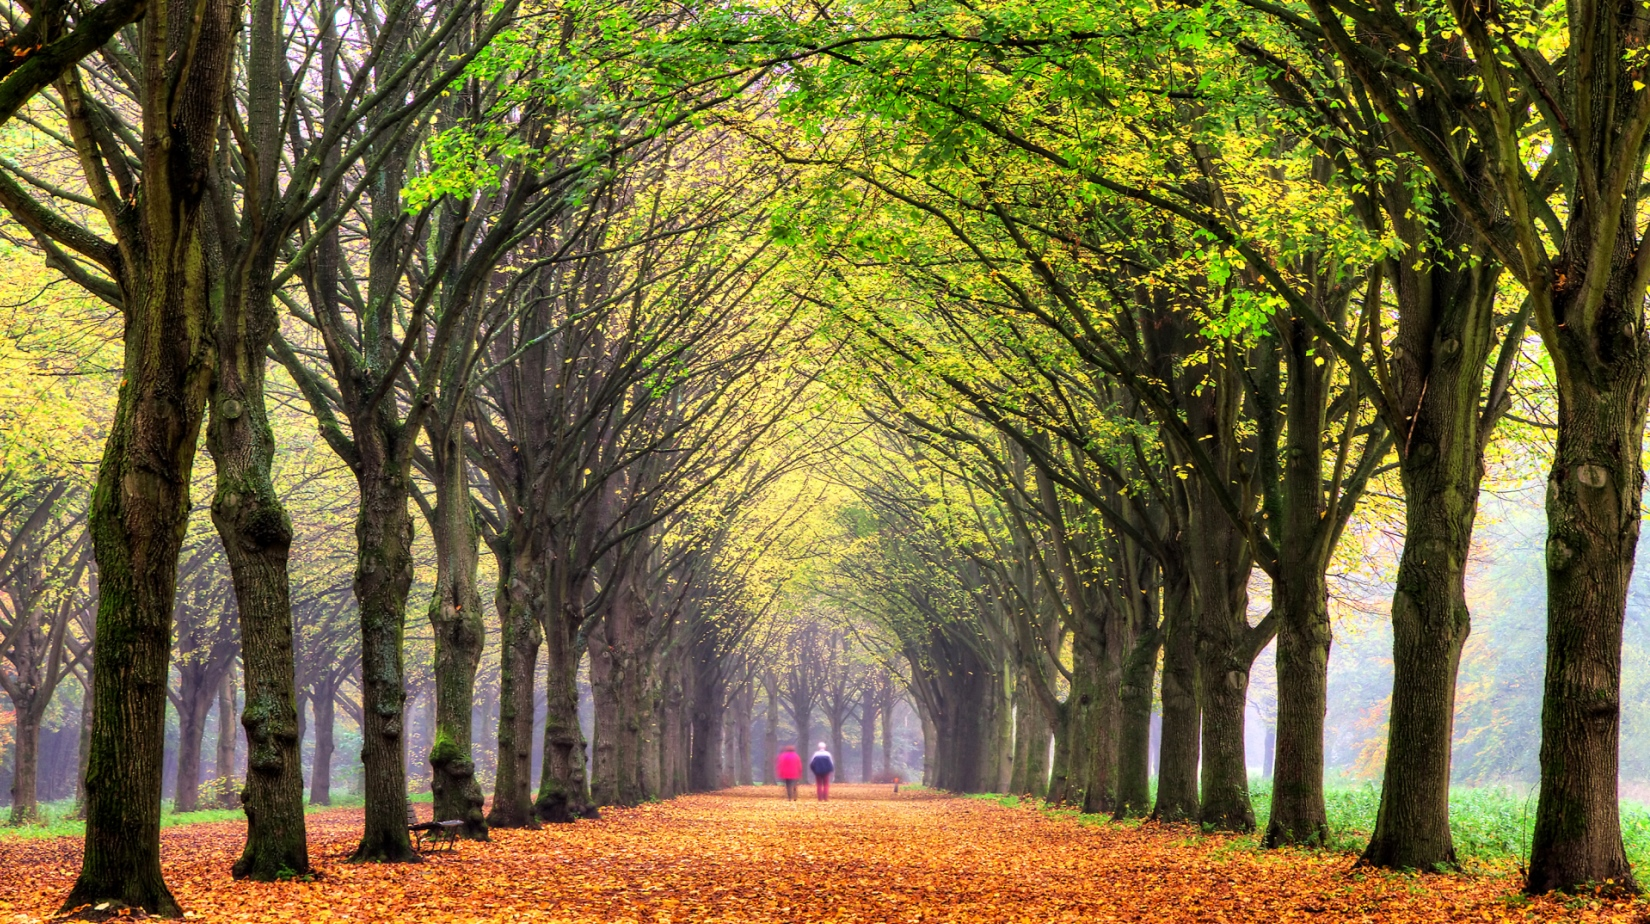 People walking along tree lined path